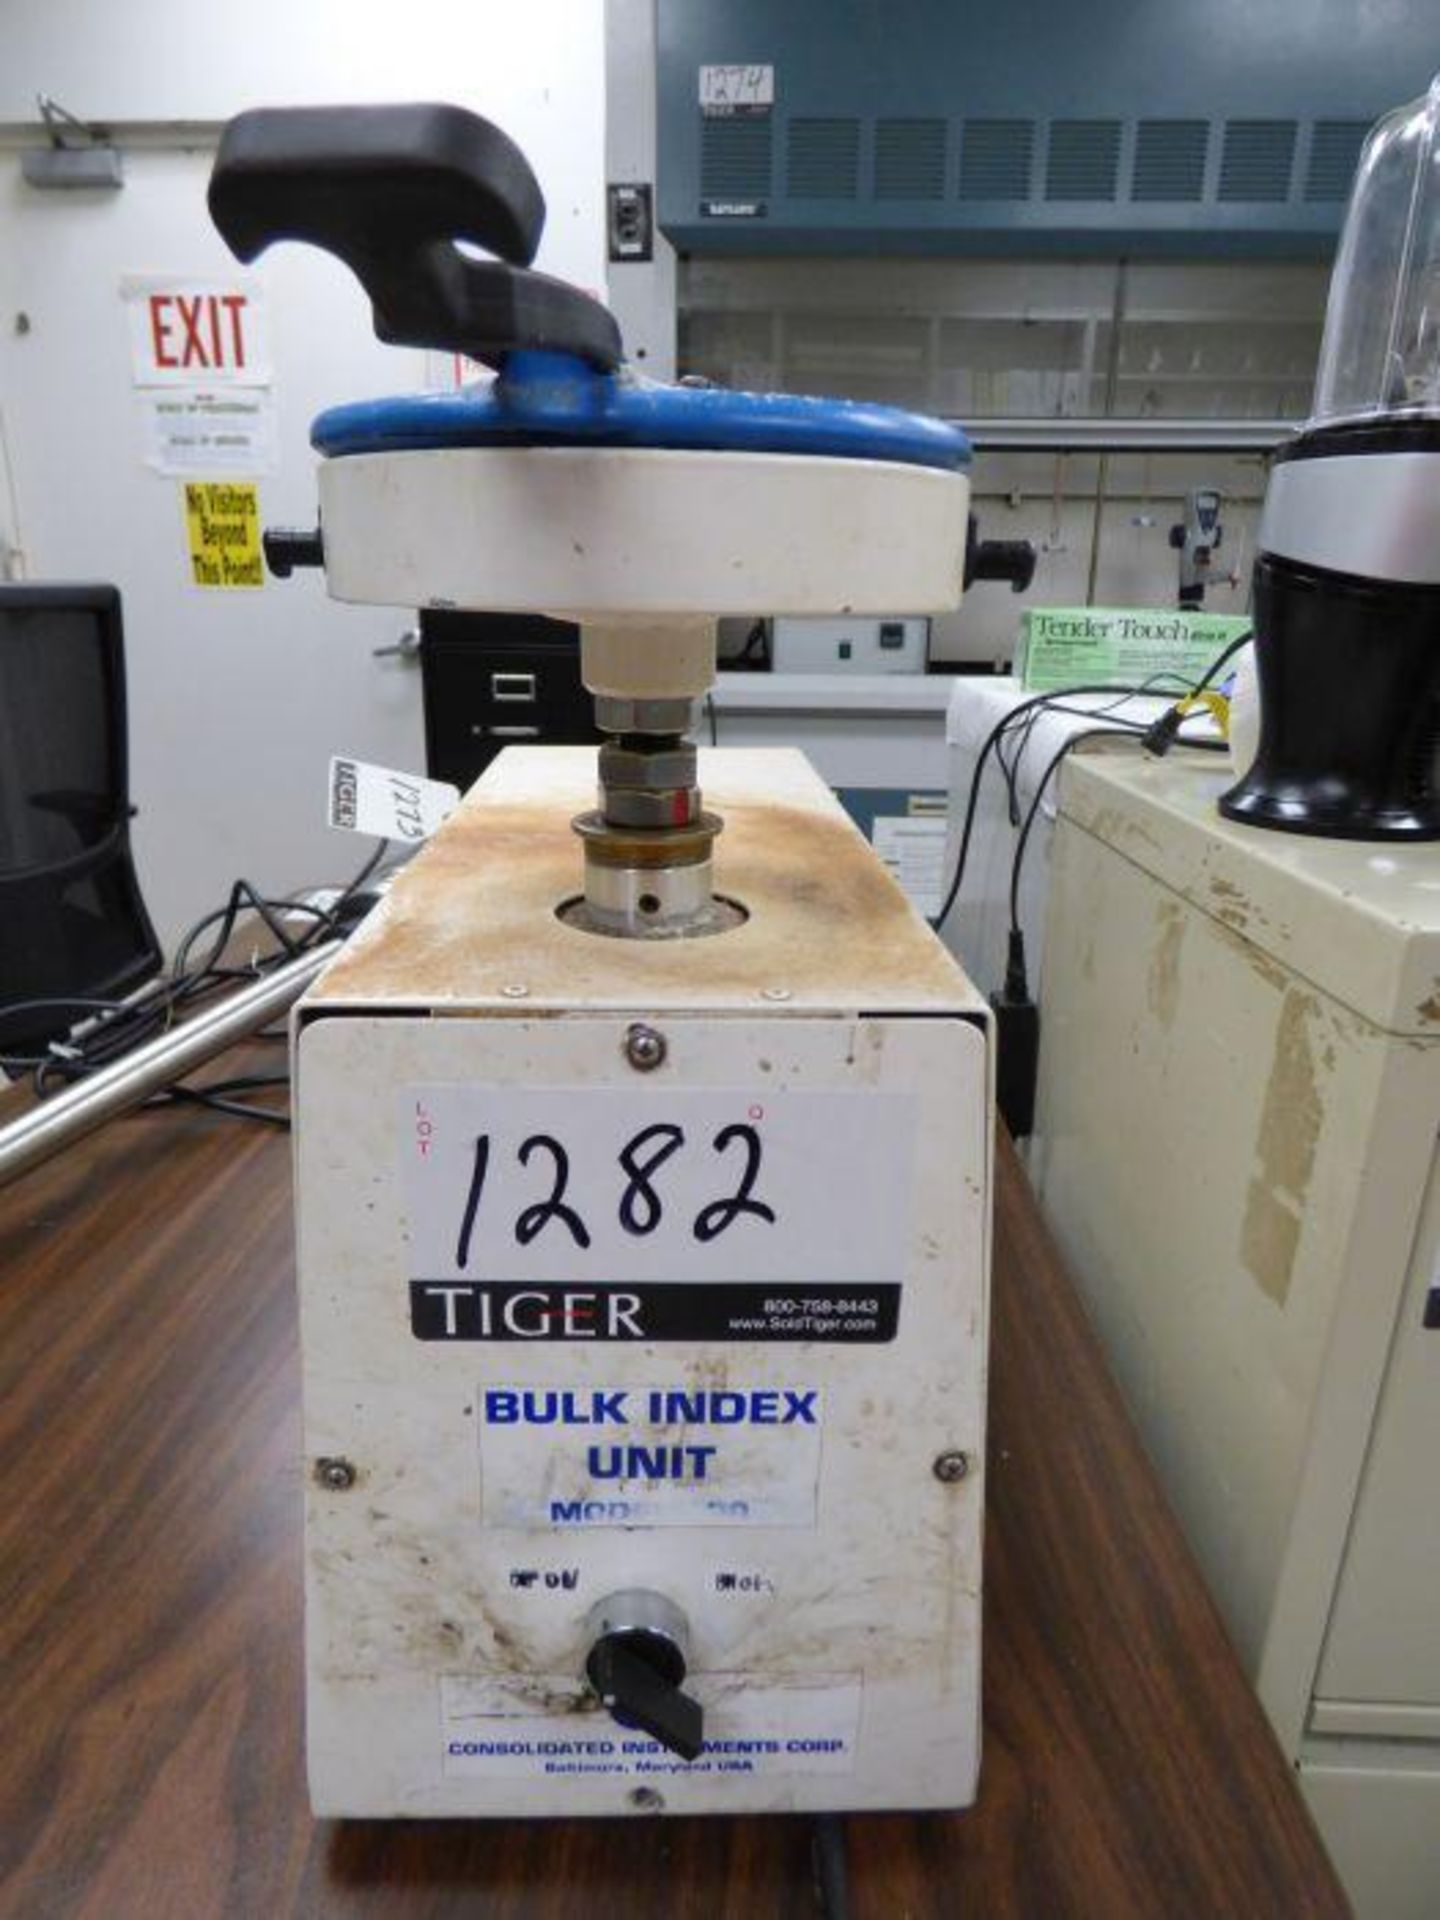 Lot 1282 - Consolidated Instruments Corp. Bulk Index Unit